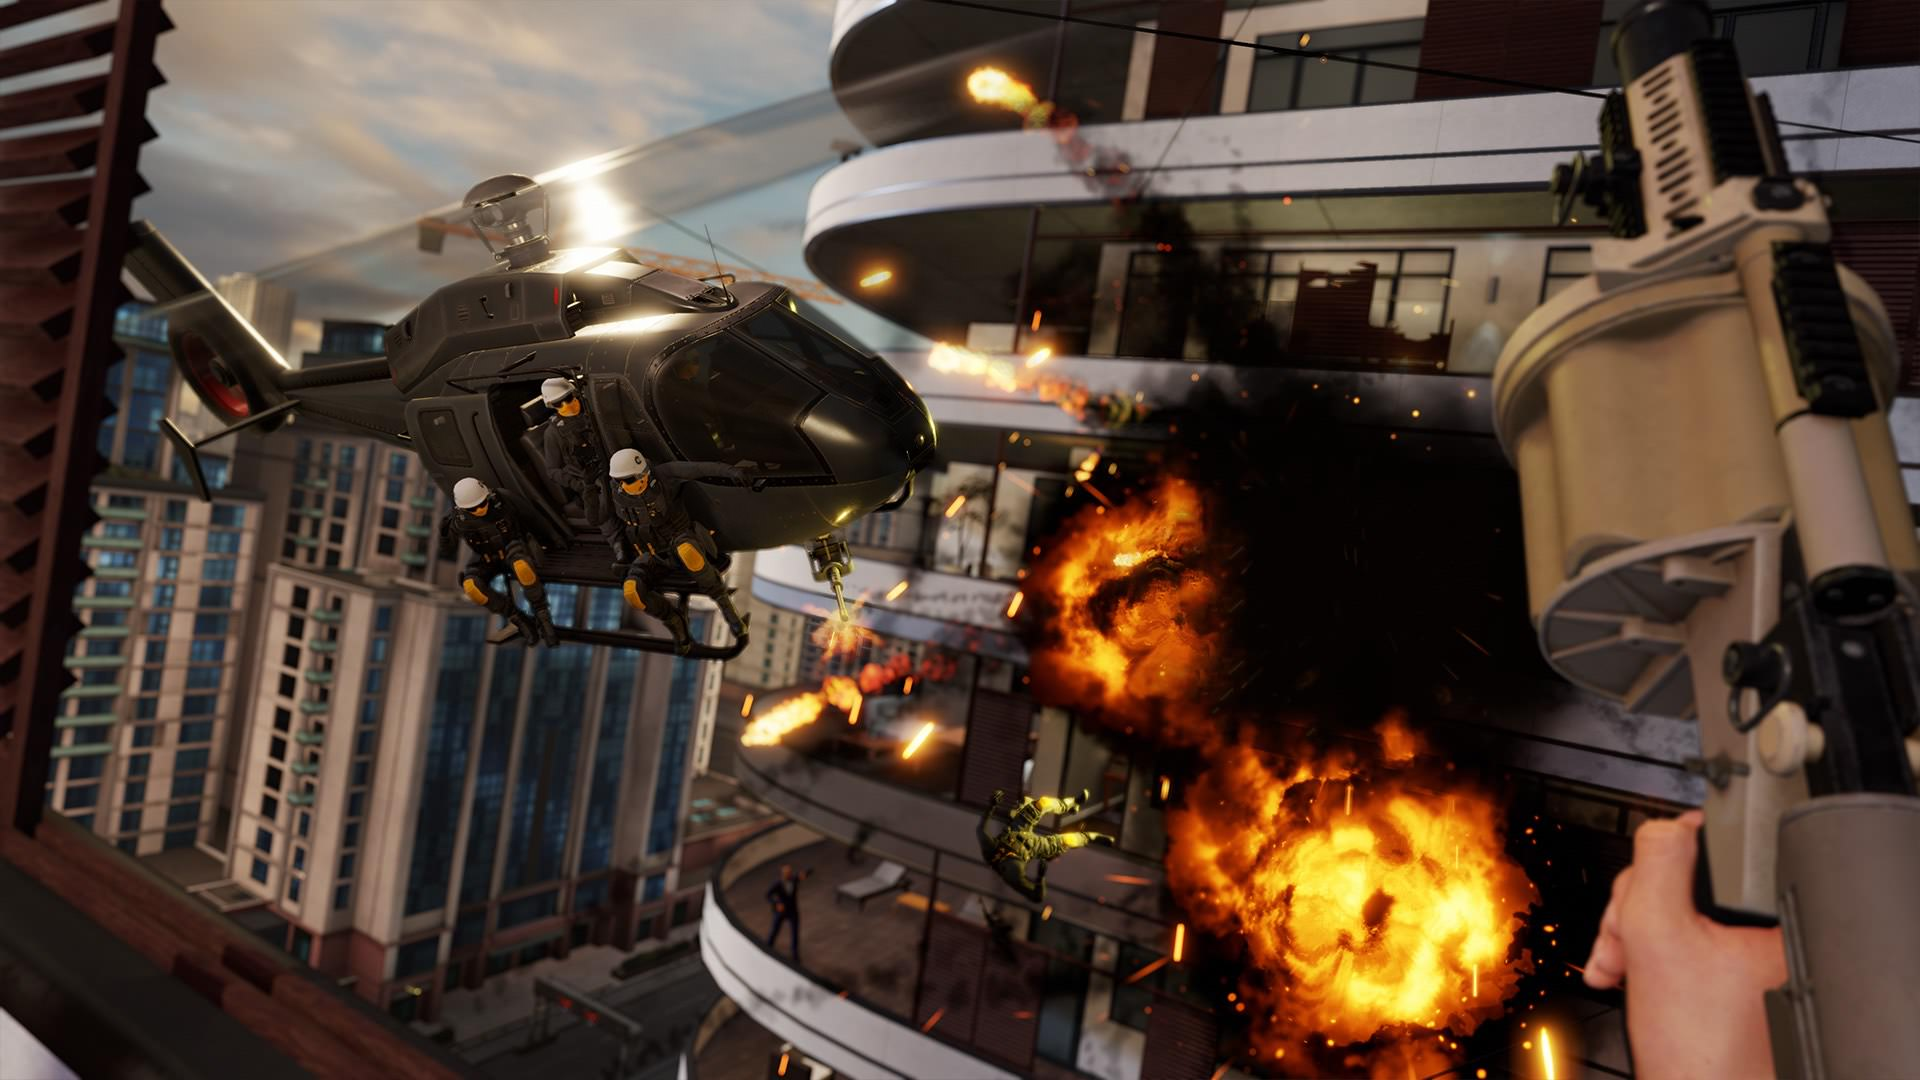 Shoot a helicopter with a grenade launcher in the bloody game Blood & Truth